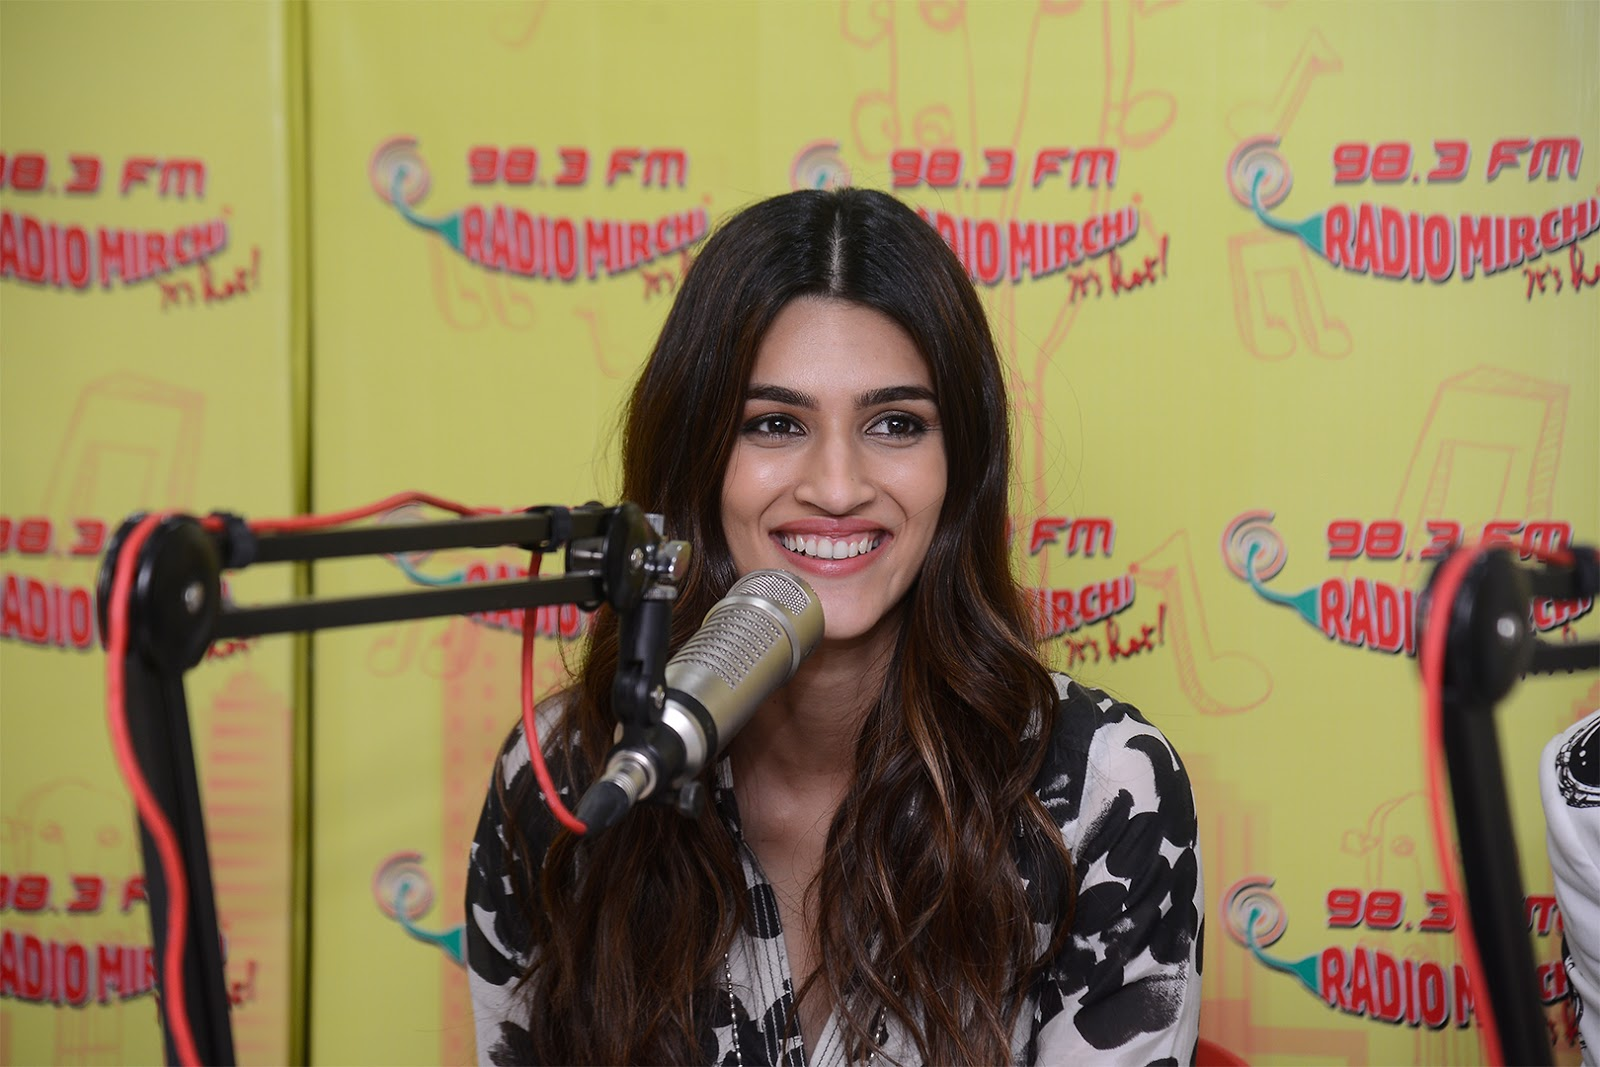 Bareilly Ki Barfi Starcast Kriti Sanon Promoting Movie at Radio Mirchi Studio